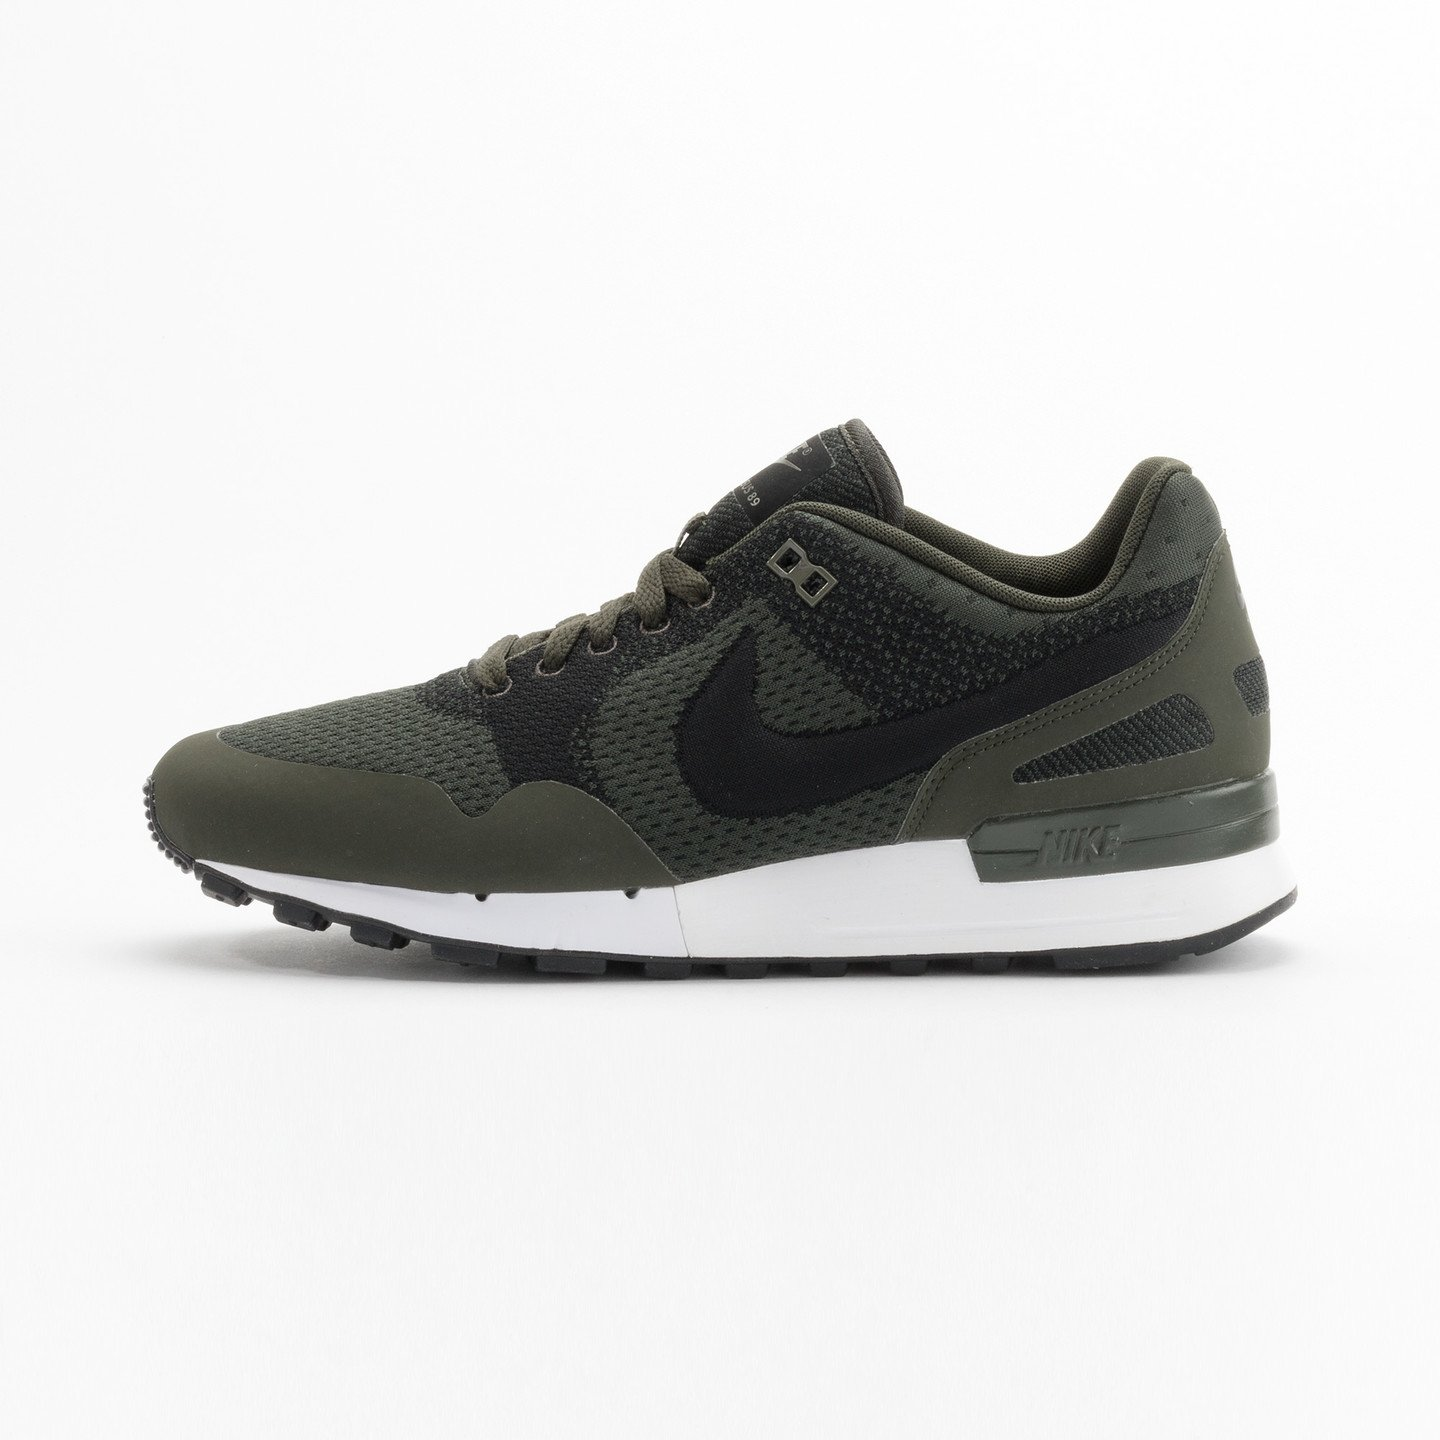 Nike Air Pegasus ´89 Jacquard Sequoia / Black / White 844751-300-42